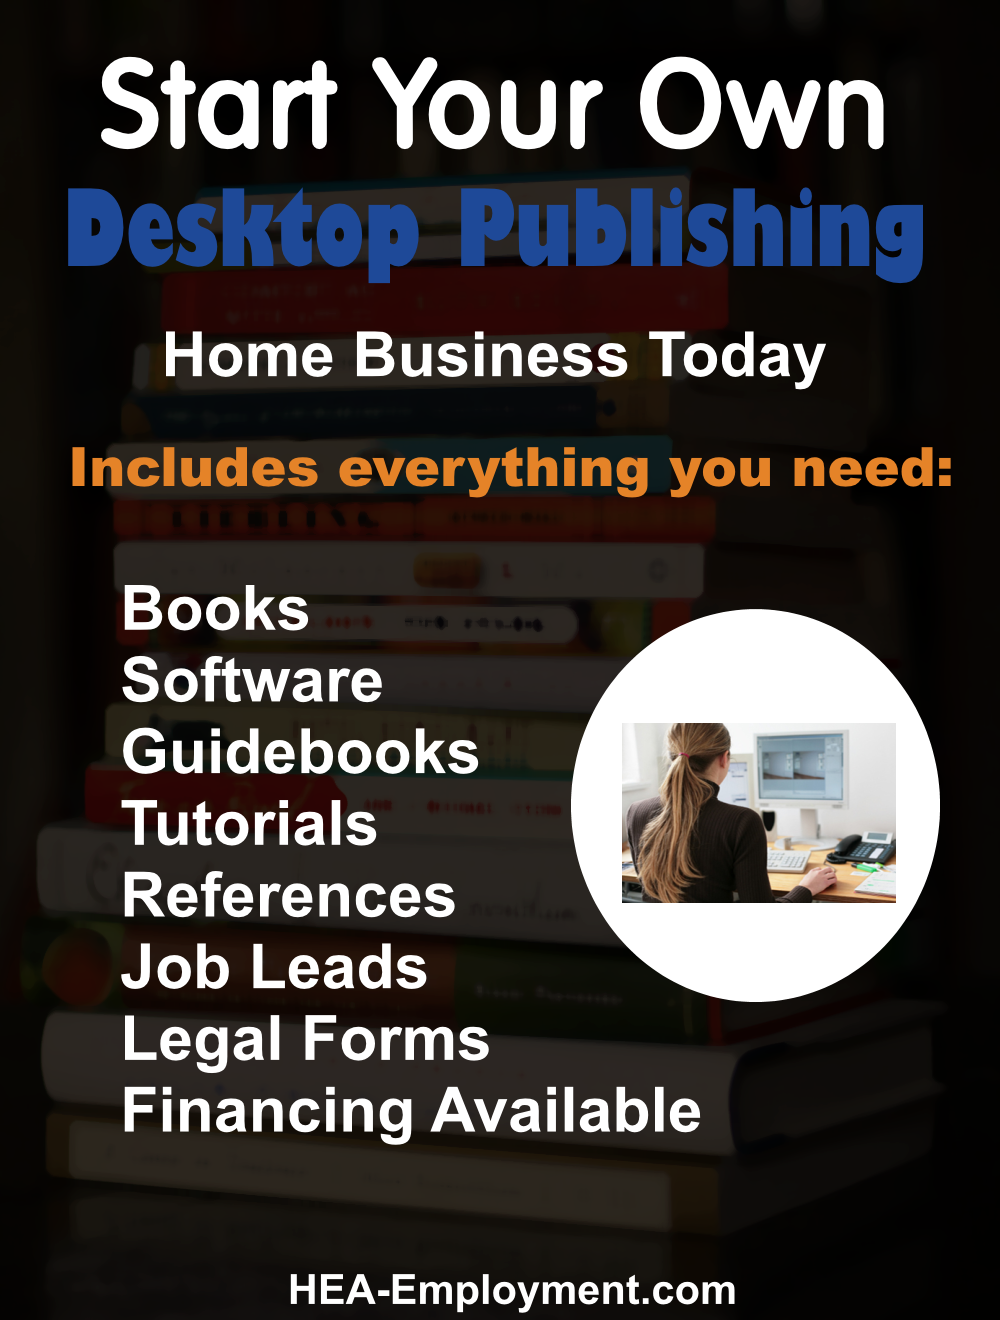 Start your own desktop publishing legitimate home based business. Fully equipped home business package with everything you need to get started. Productivity software, tutorials, guidebooks, references, manuals, tax advice and legal forms are included with each kit. Be your own boss!